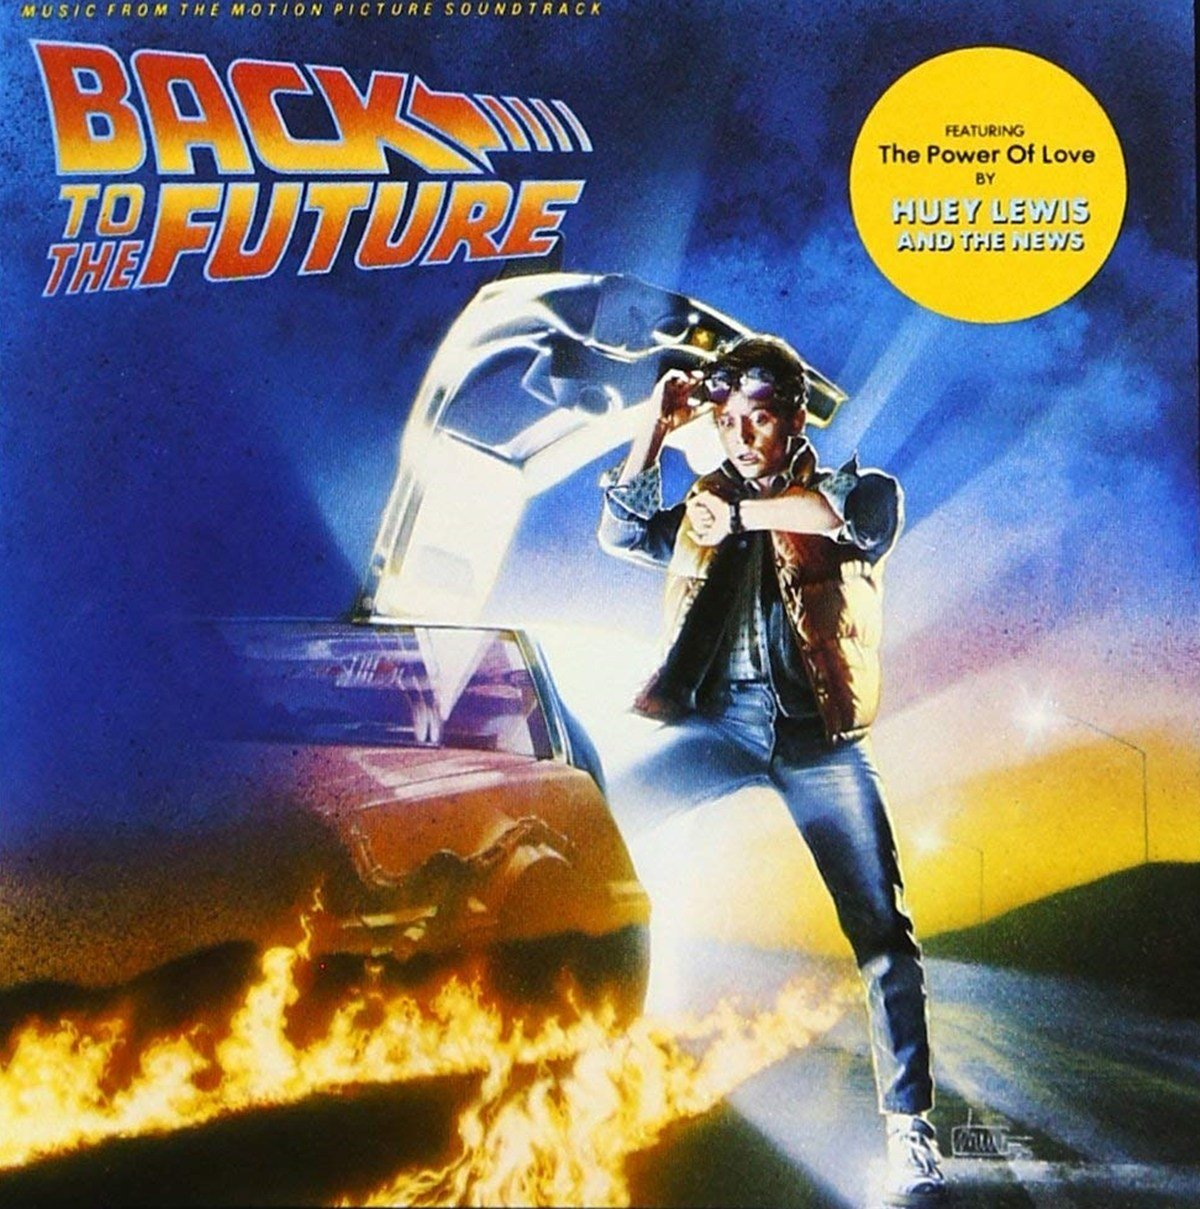 1 7 10 Film Soundtracks That Will Transport You Back To The 80s!